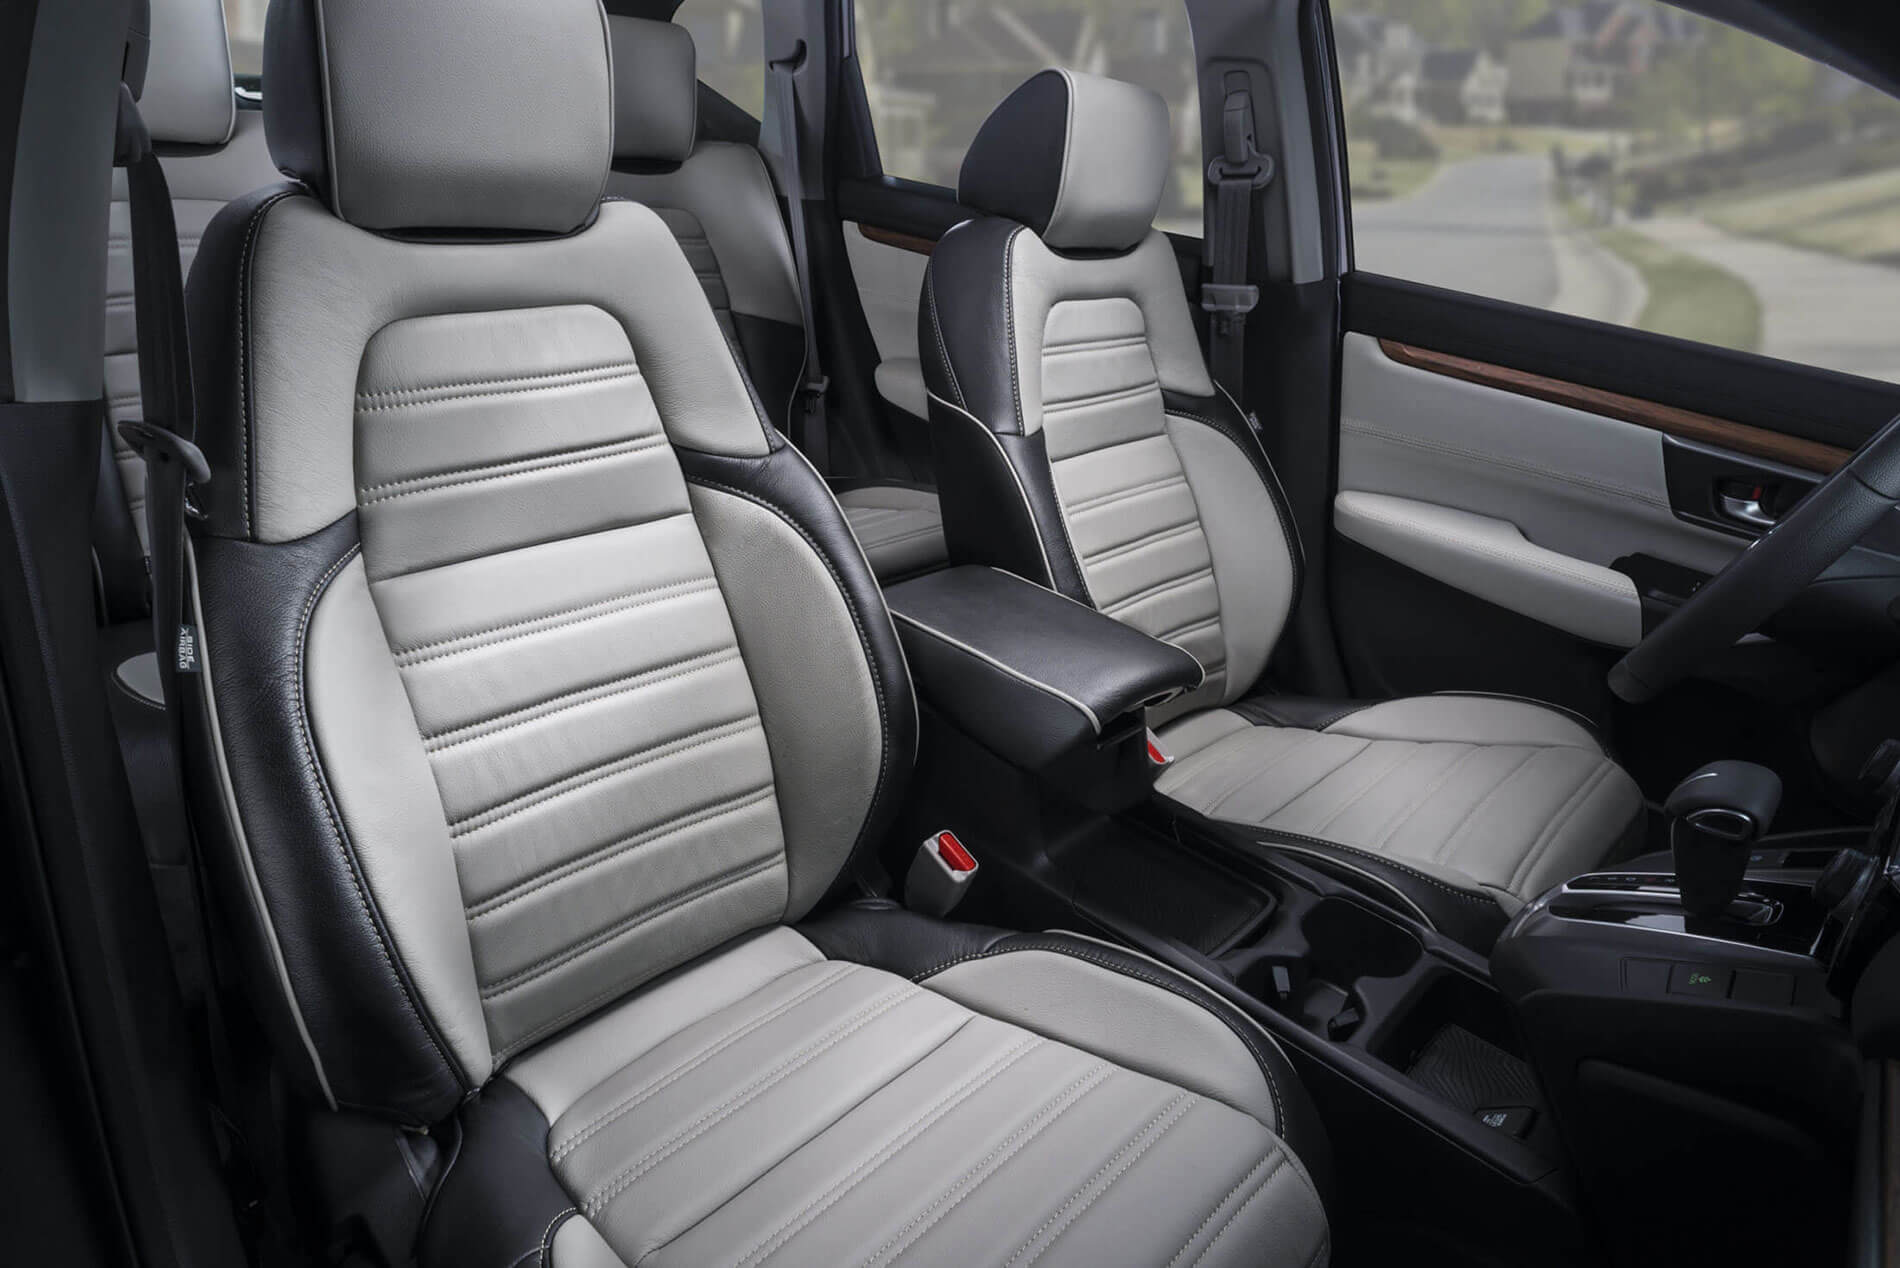 Katzkin honda crv gray leather seats interior katzkin for Gray honda crv